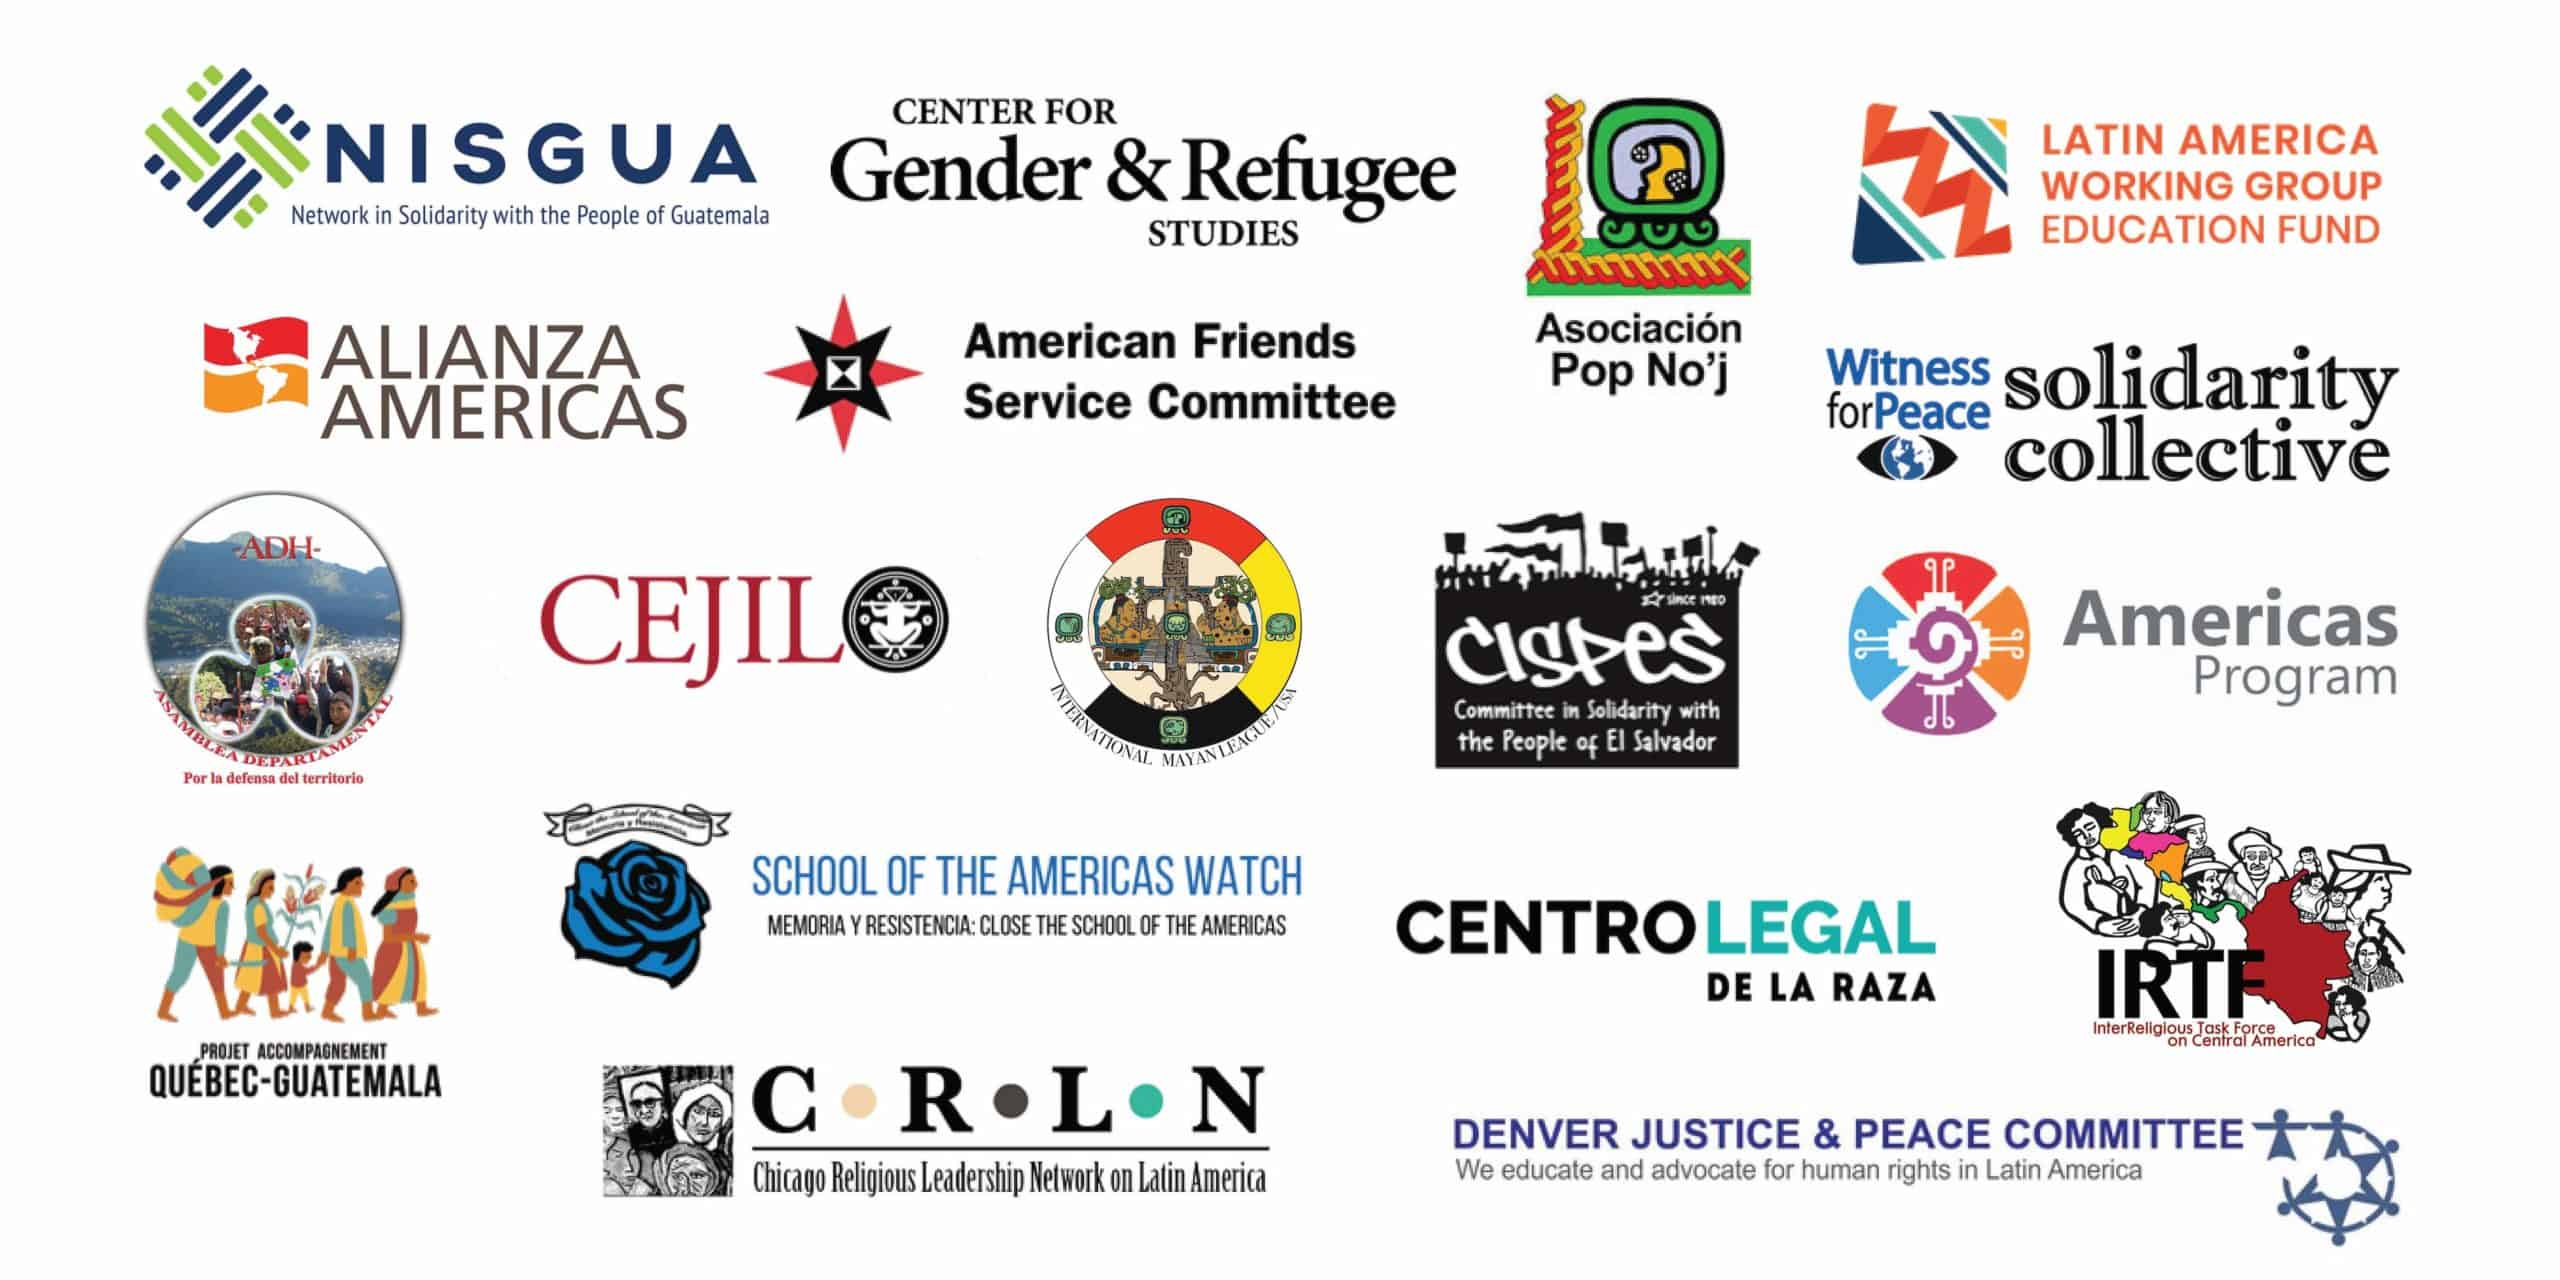 A graphic with the logos of 18 organizations: NISGUA, CGRS, Association Pop No'j, LAWG, Alianza Americas, AFSC, WFP, ADH, CEJIL, IML, CISPES, Americas Program, PAQG, SOAW, Centro Legal de la Raza, IRTF, CRLN, and DJPC